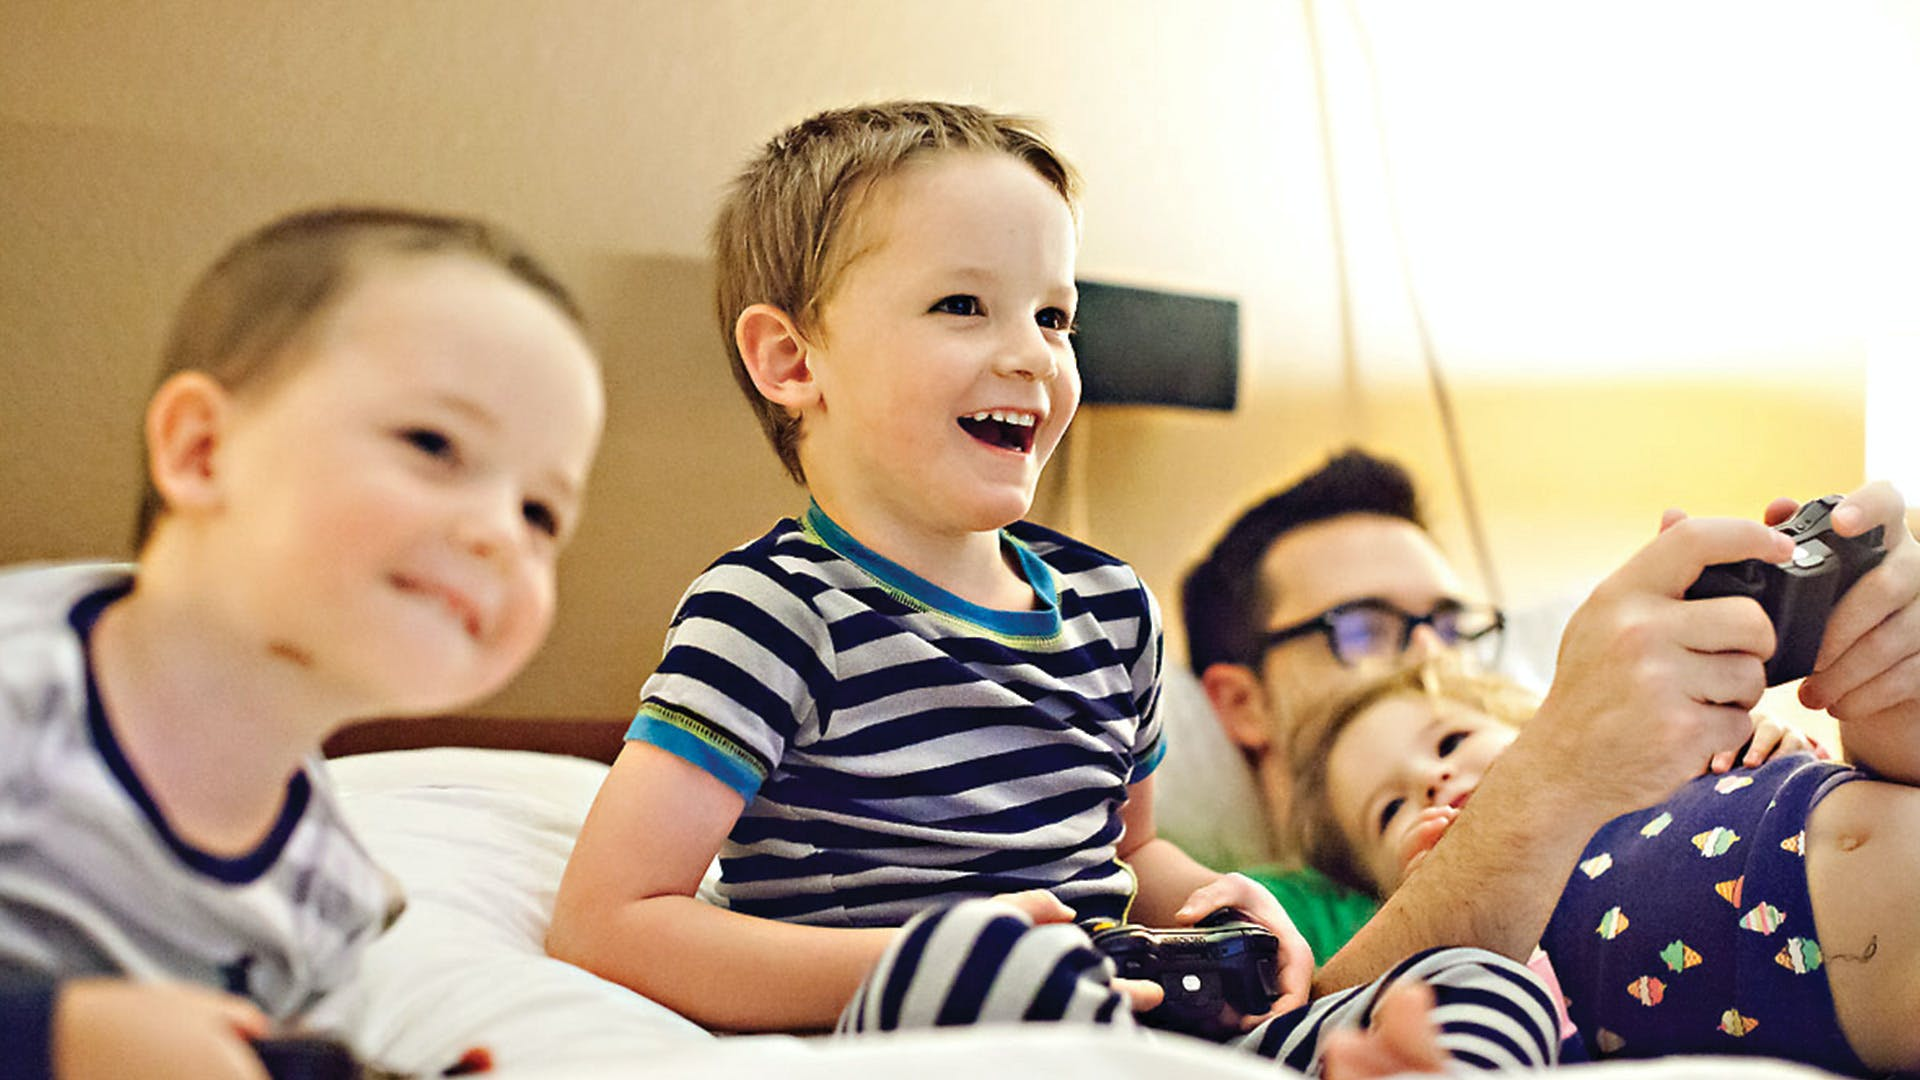 Should I Make My Kid Stop Playing Games? A Gamer's Open Letter to Parents